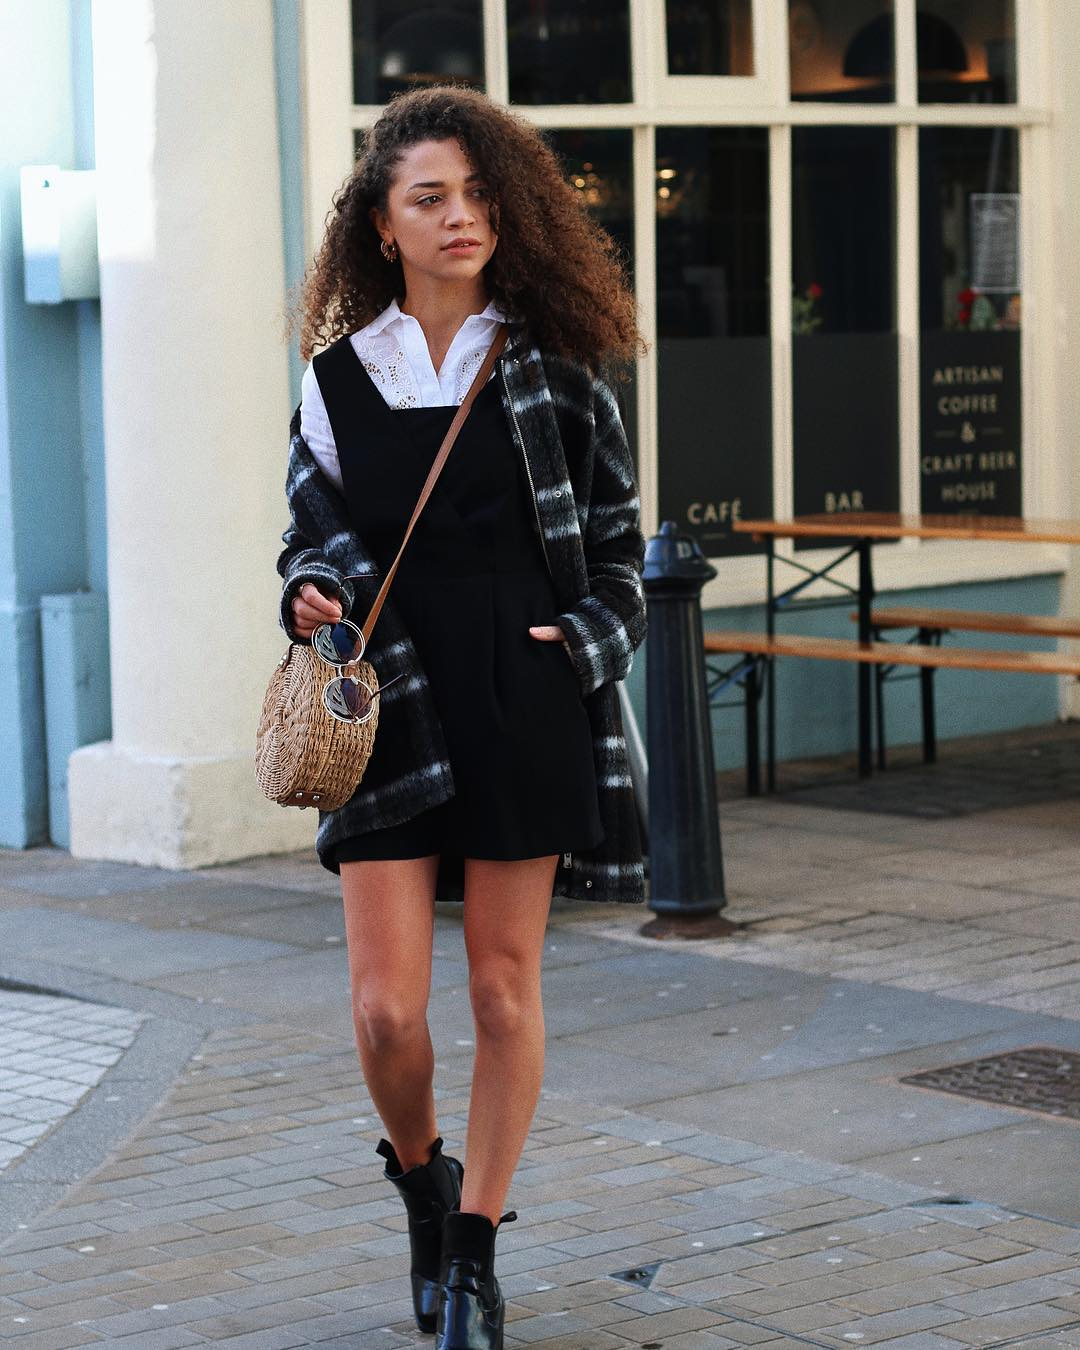 Awesome Playsuit, Blouse, Jacket And Basket Bag